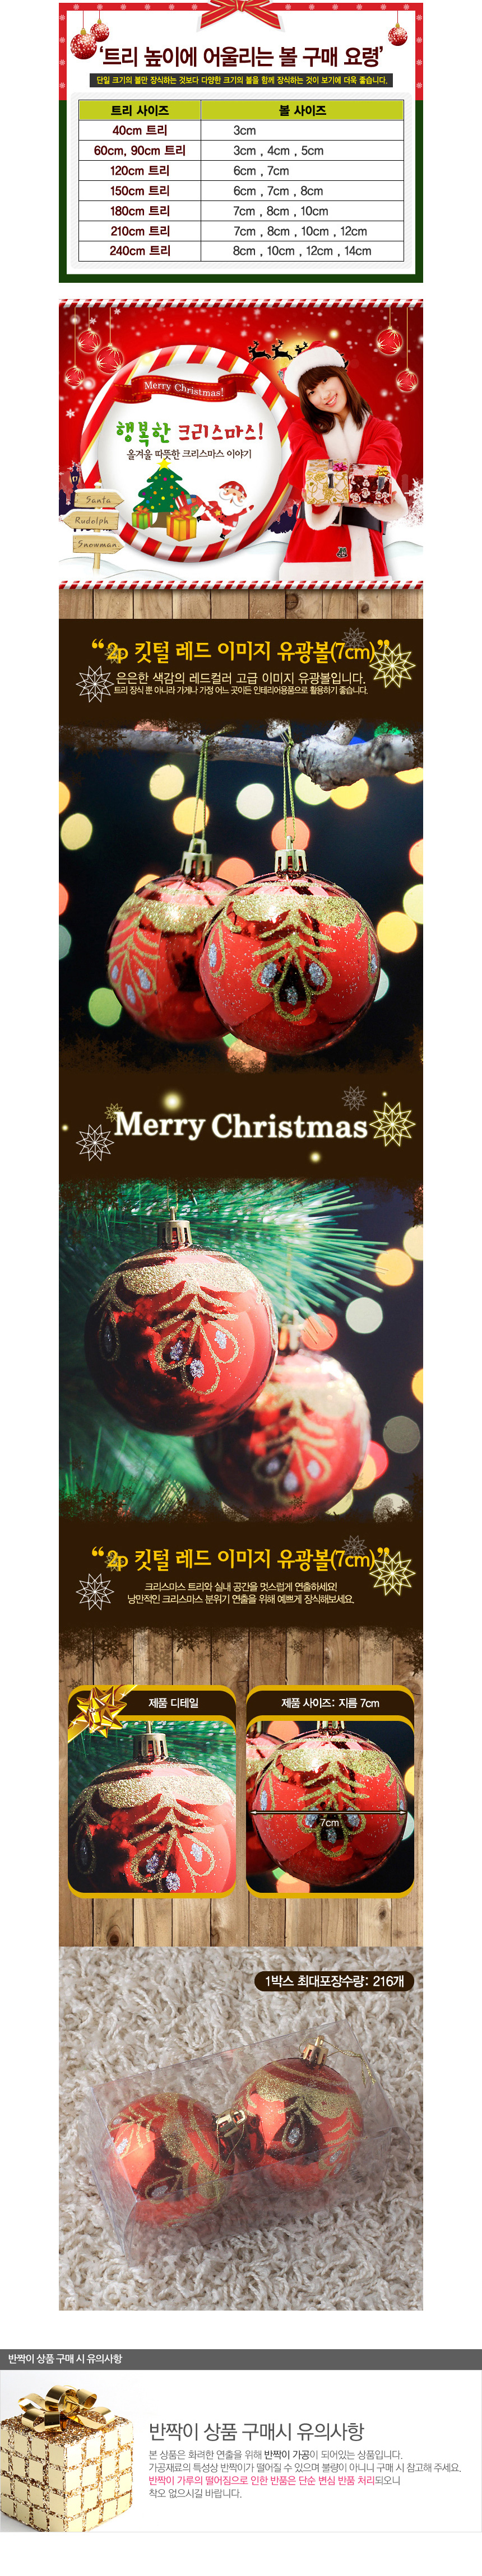 [ WINEQOK ] Christmas Goods / Kittell Red Velvet Image Glossy Ball 1p